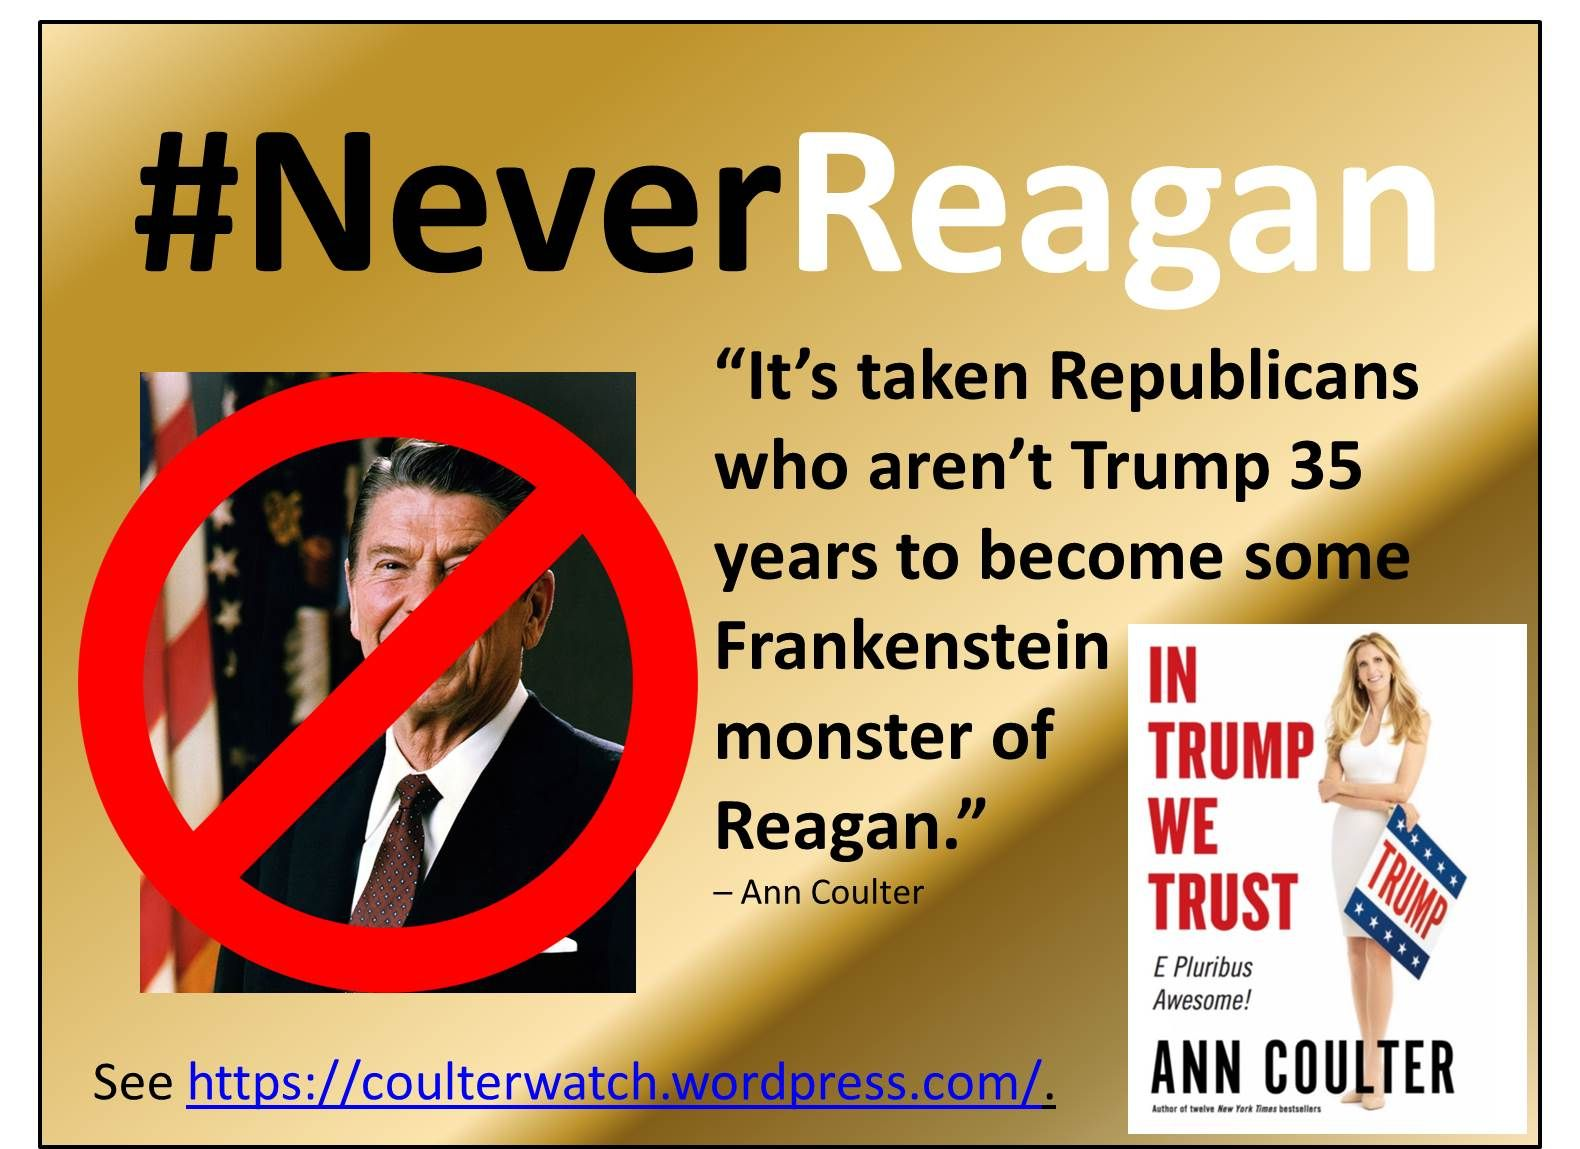 """Ann Coulter sacrifices Ronald Reagan to exalt Donald Trump. But Trump is the ultimate anti-Reagan.  See """"#NeverReagan"""" at http://wp.me/p4jHFp-iG. #InTrumpWeTrust #NeverTrump #AnnCoulter"""